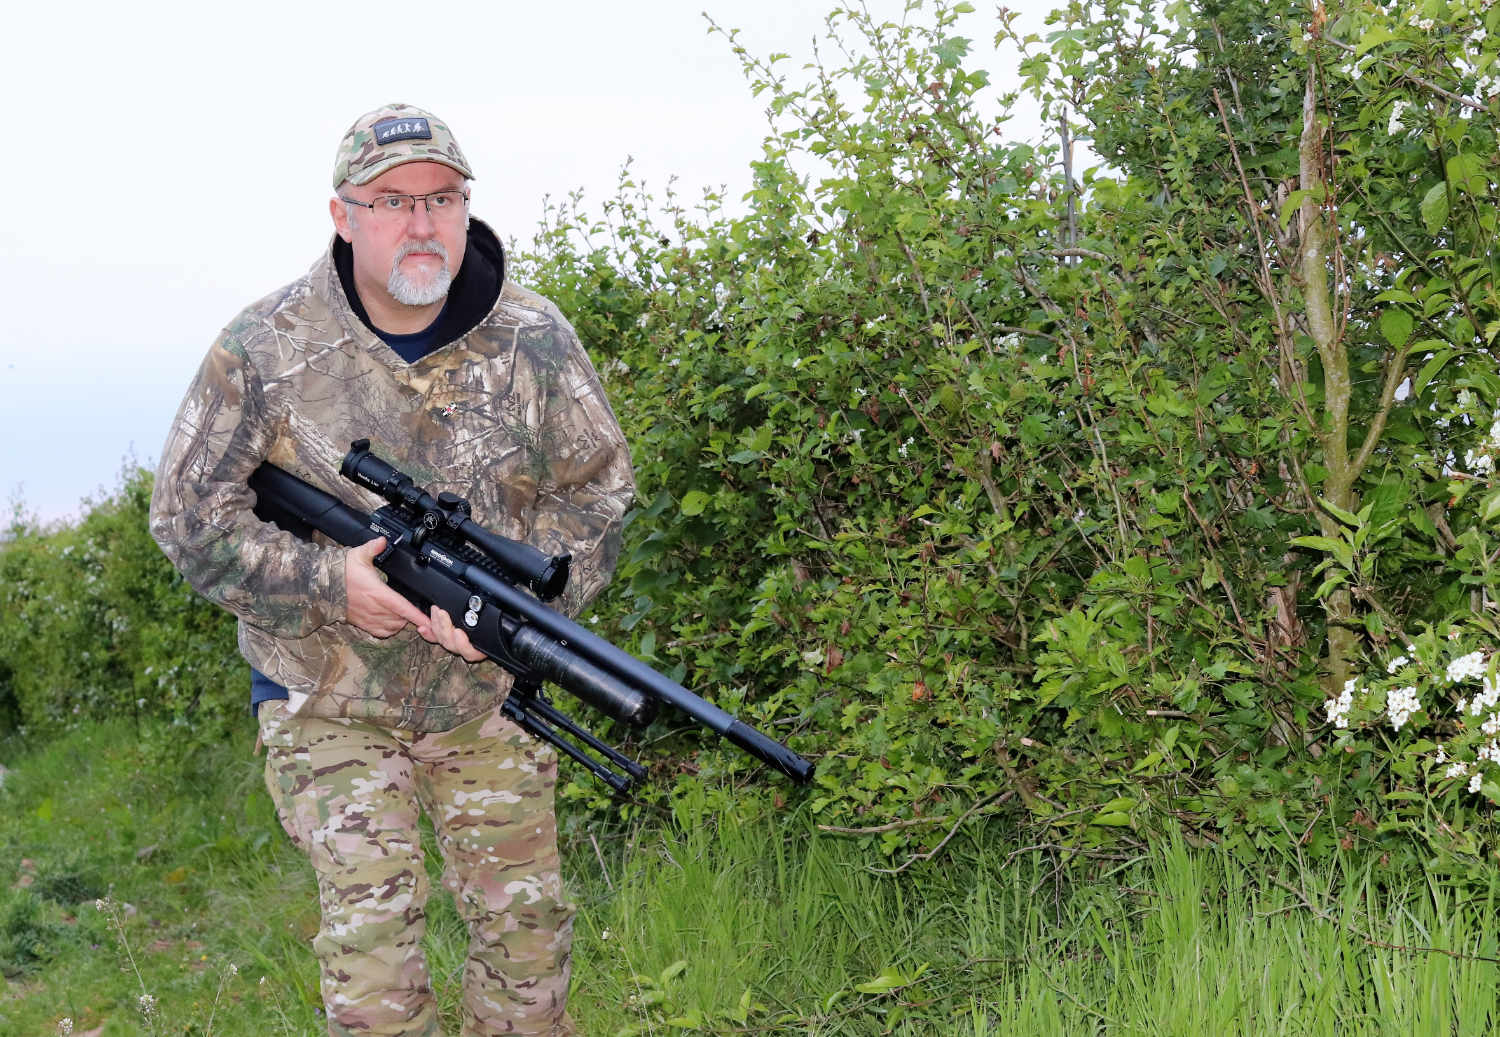 Stalking with the Bantam Sniper HR